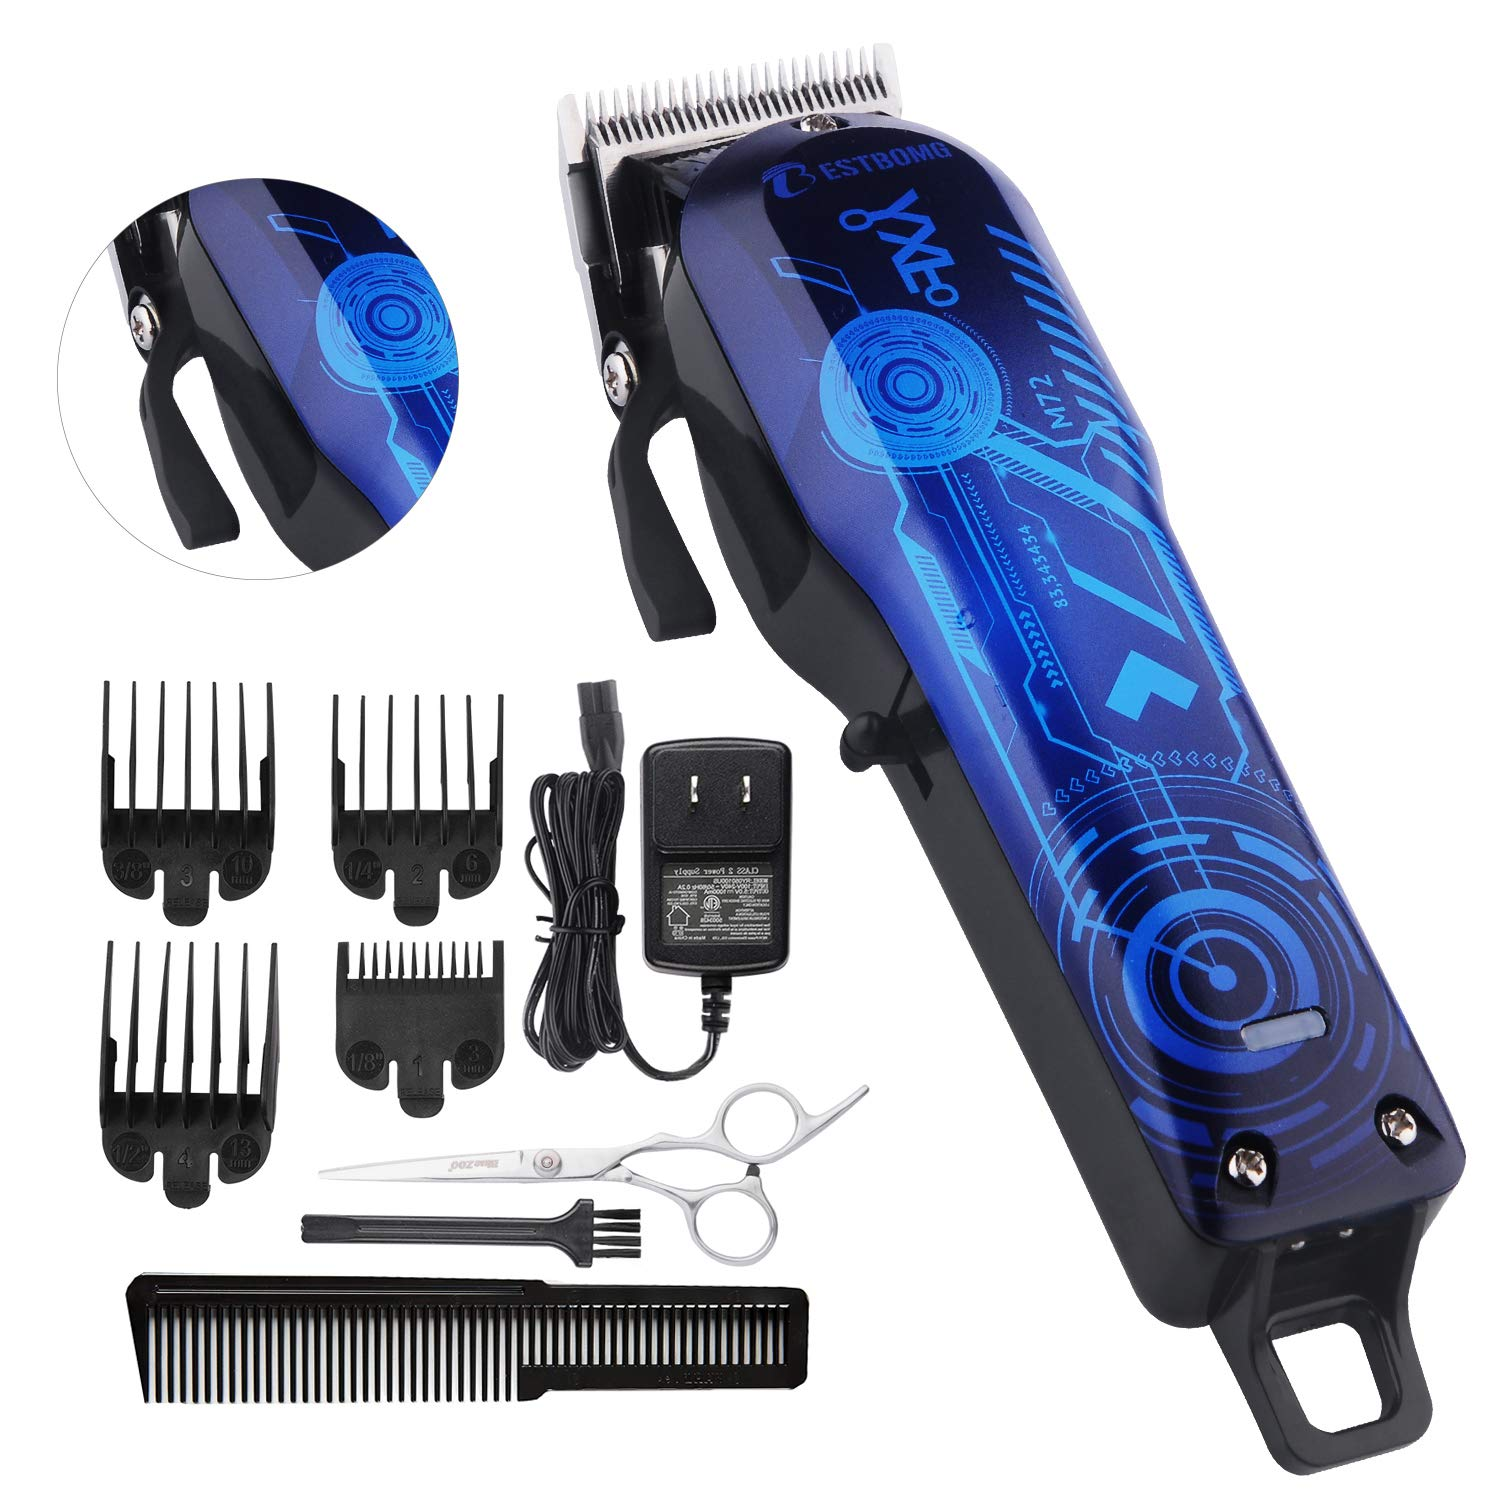 Professional Cordless Rechargeable Hair Clippers for men Beard Trimmer BESTMOGE Hair Cutting Kit for Kids with Taper Lever, Rechargeable Li-ion Battery ICR18650 Heavy Duty Motor